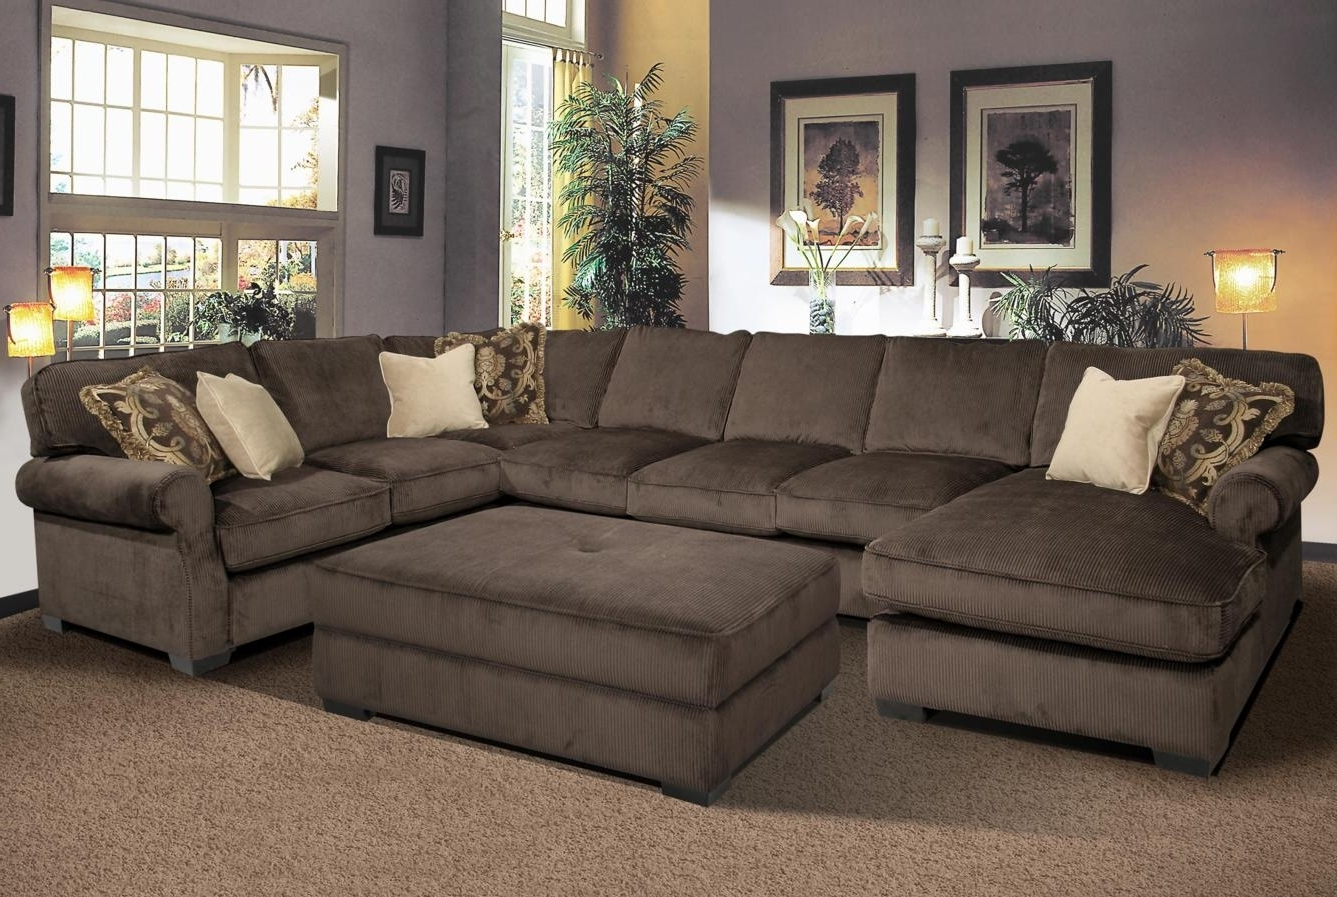 Inexpensive Sectional Sofas For Small Spaces For Well Liked Stylish Inexpensive Sectional Sofas For Small Spaces (View 15 of 20)